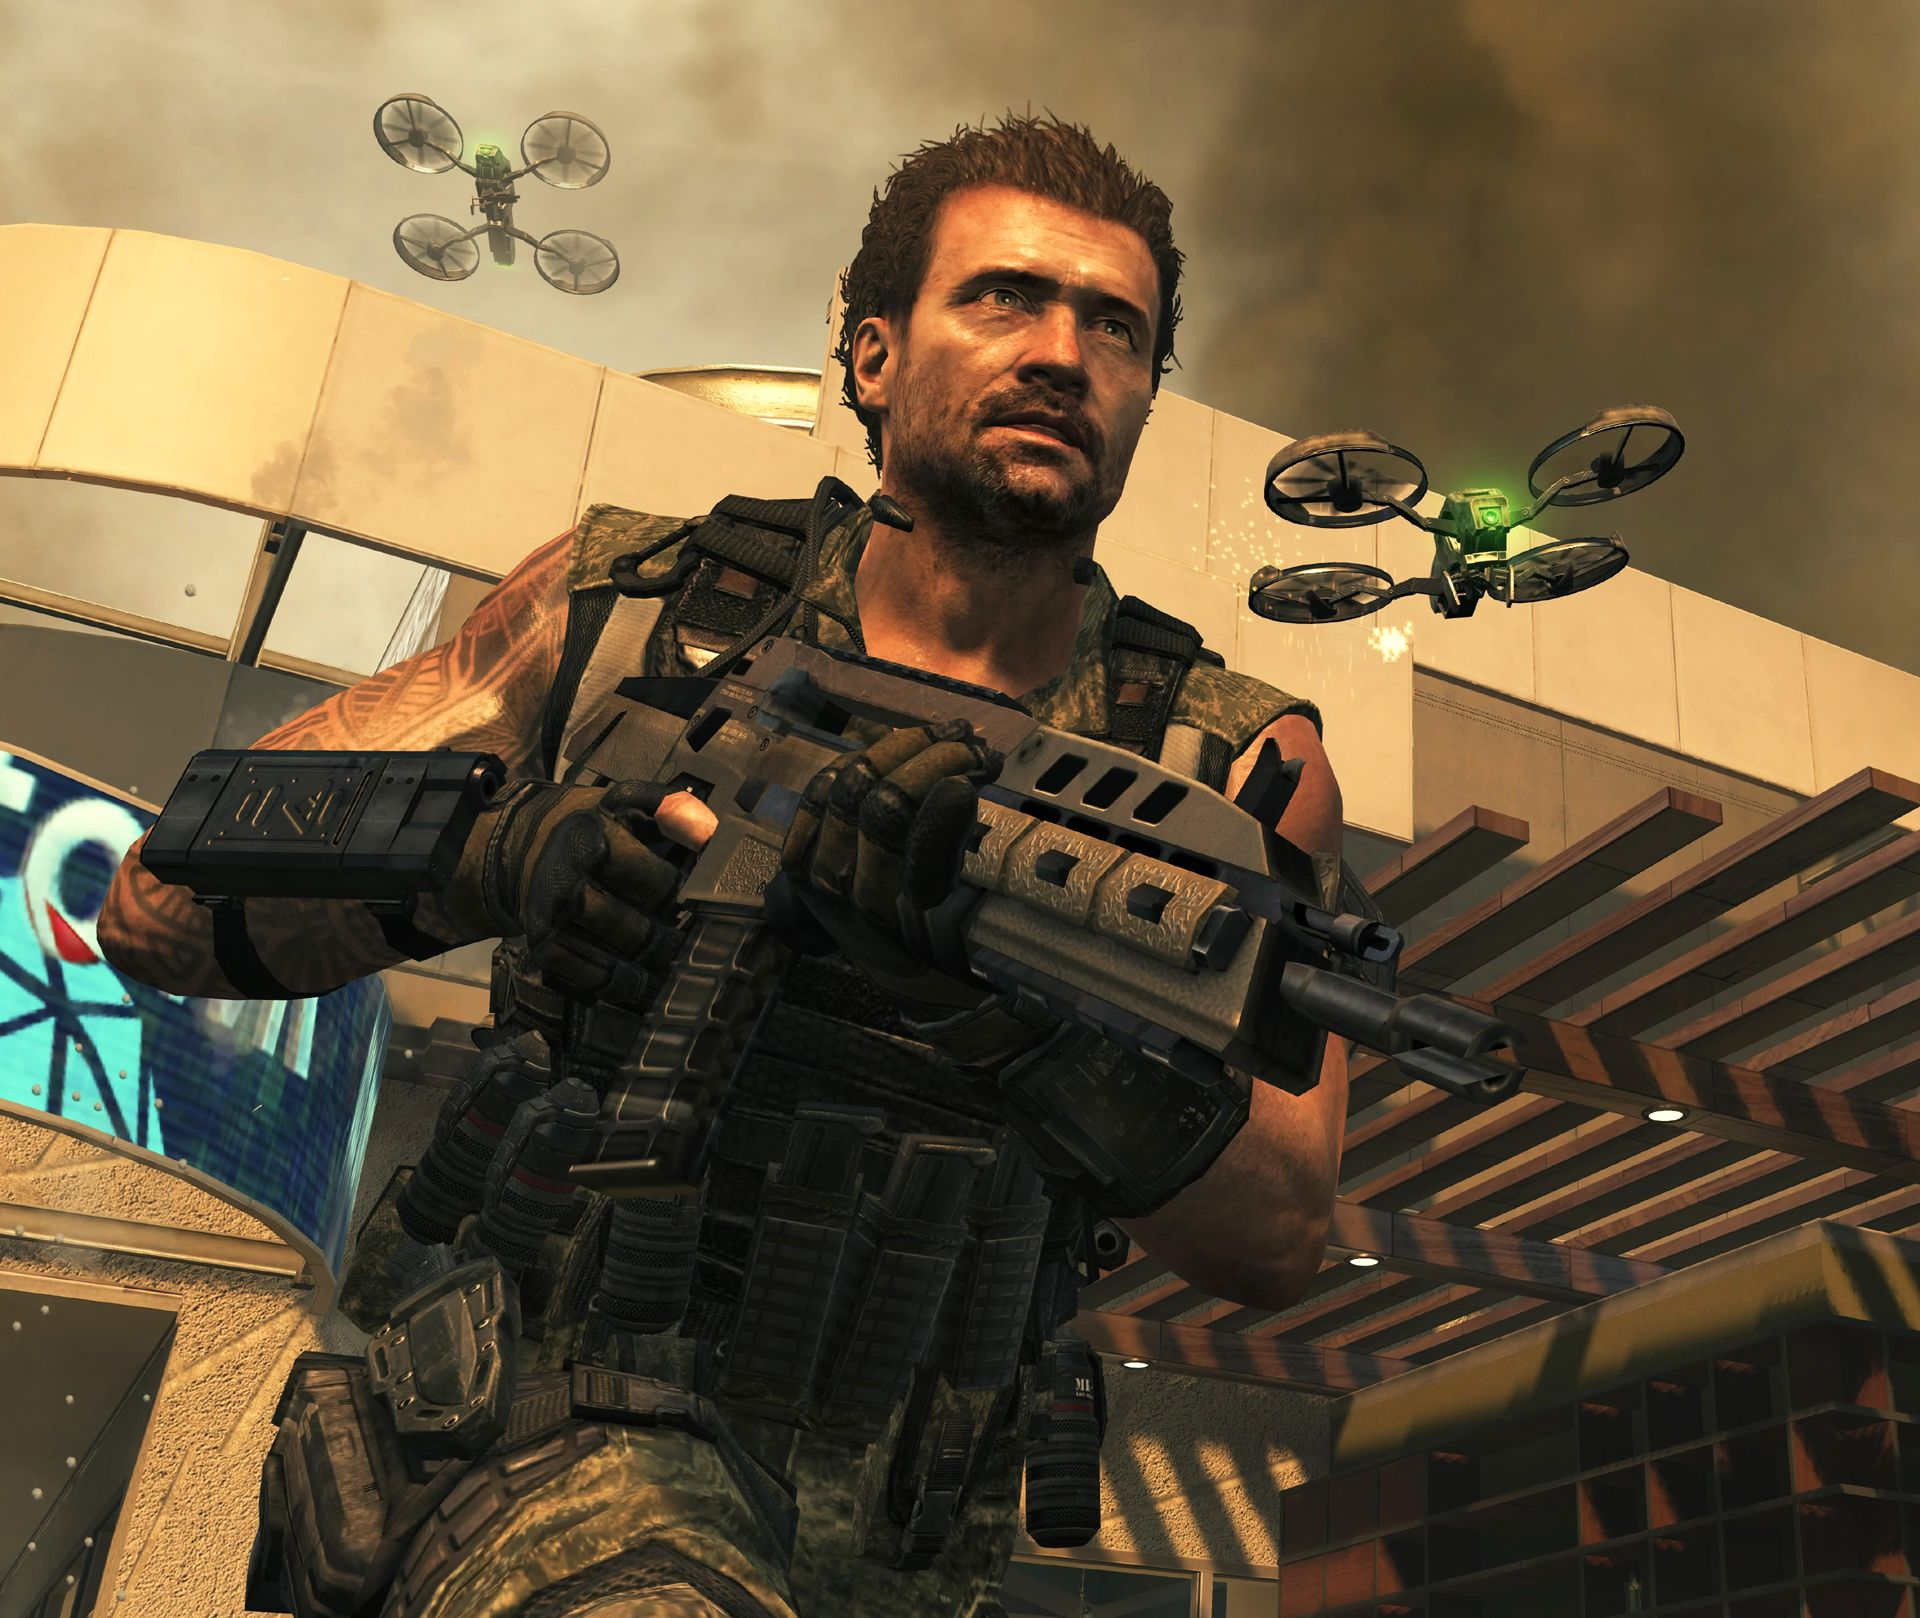 Mike Harper Black Ops 2 Black Ops Call Of Duty Video Games